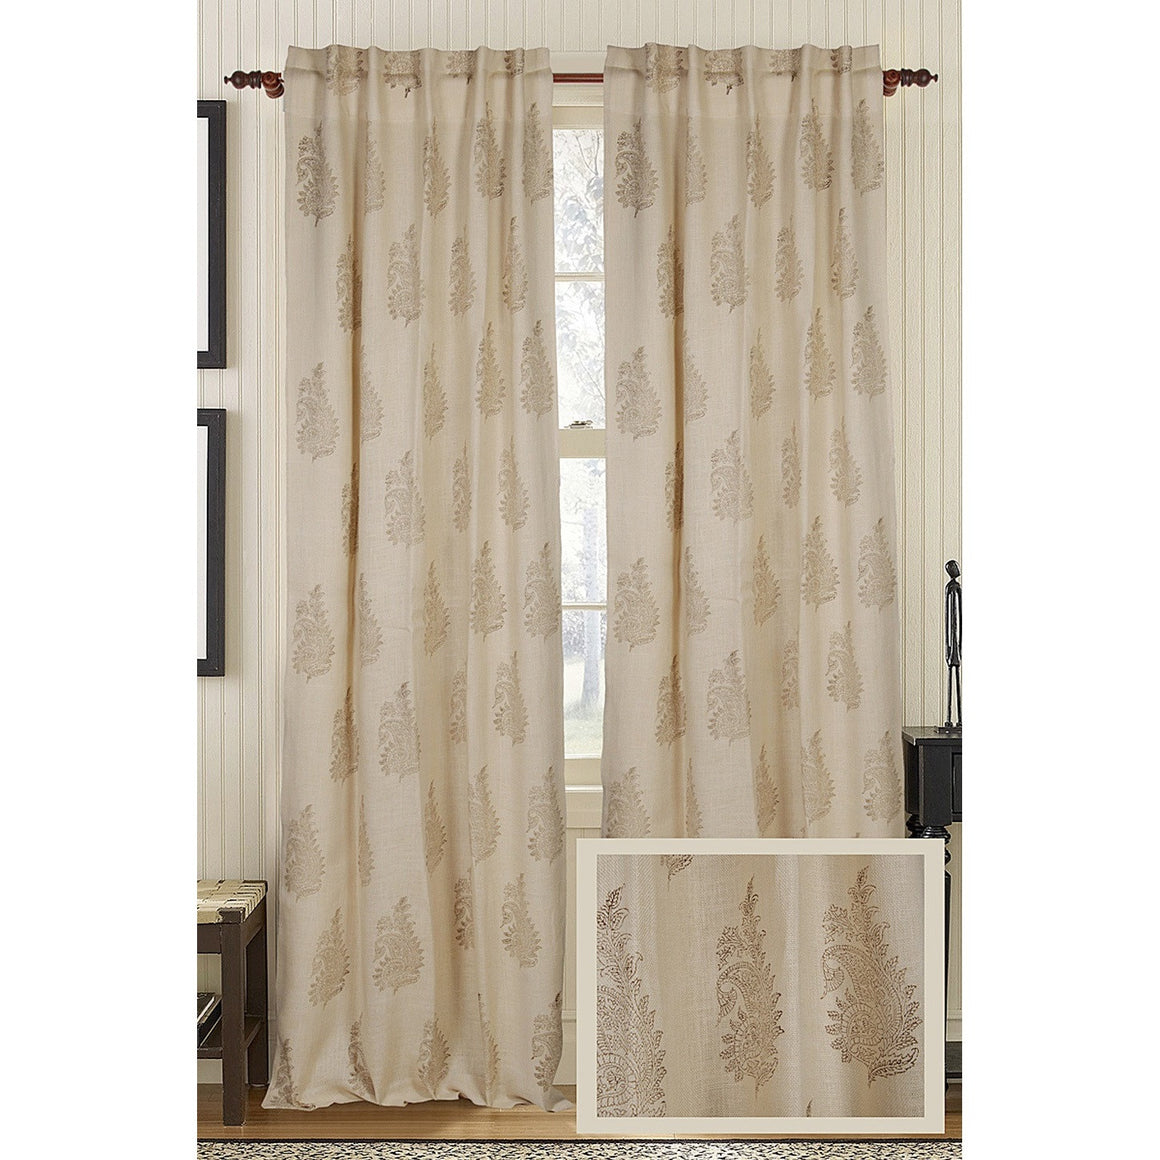 Feather Burlap Drapes - Wheatish